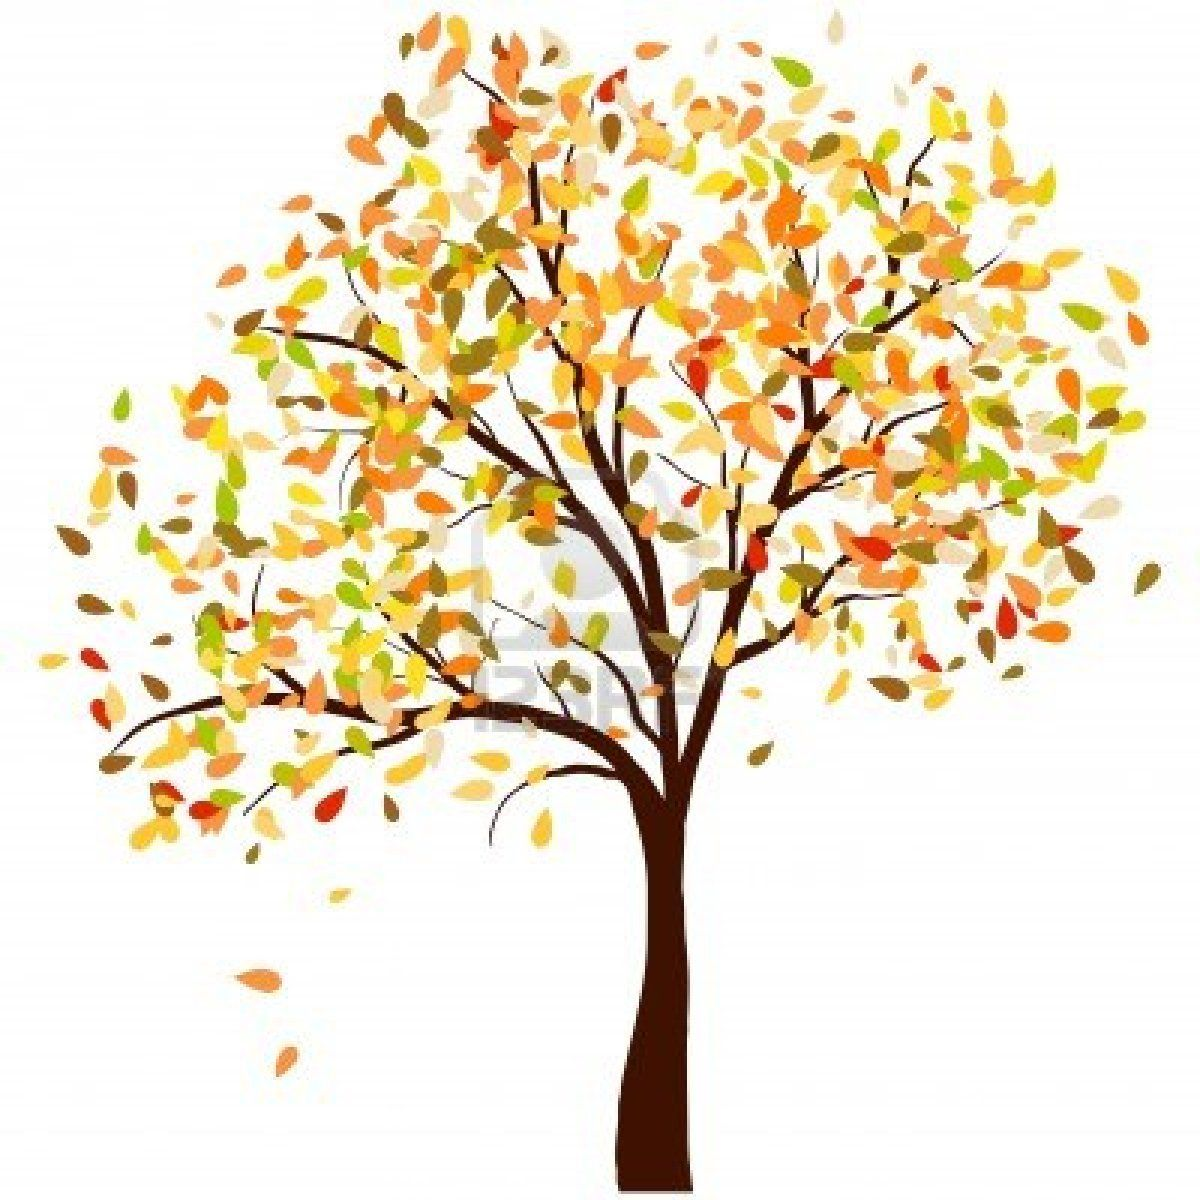 Autumn and leaves background. Clipart trees october